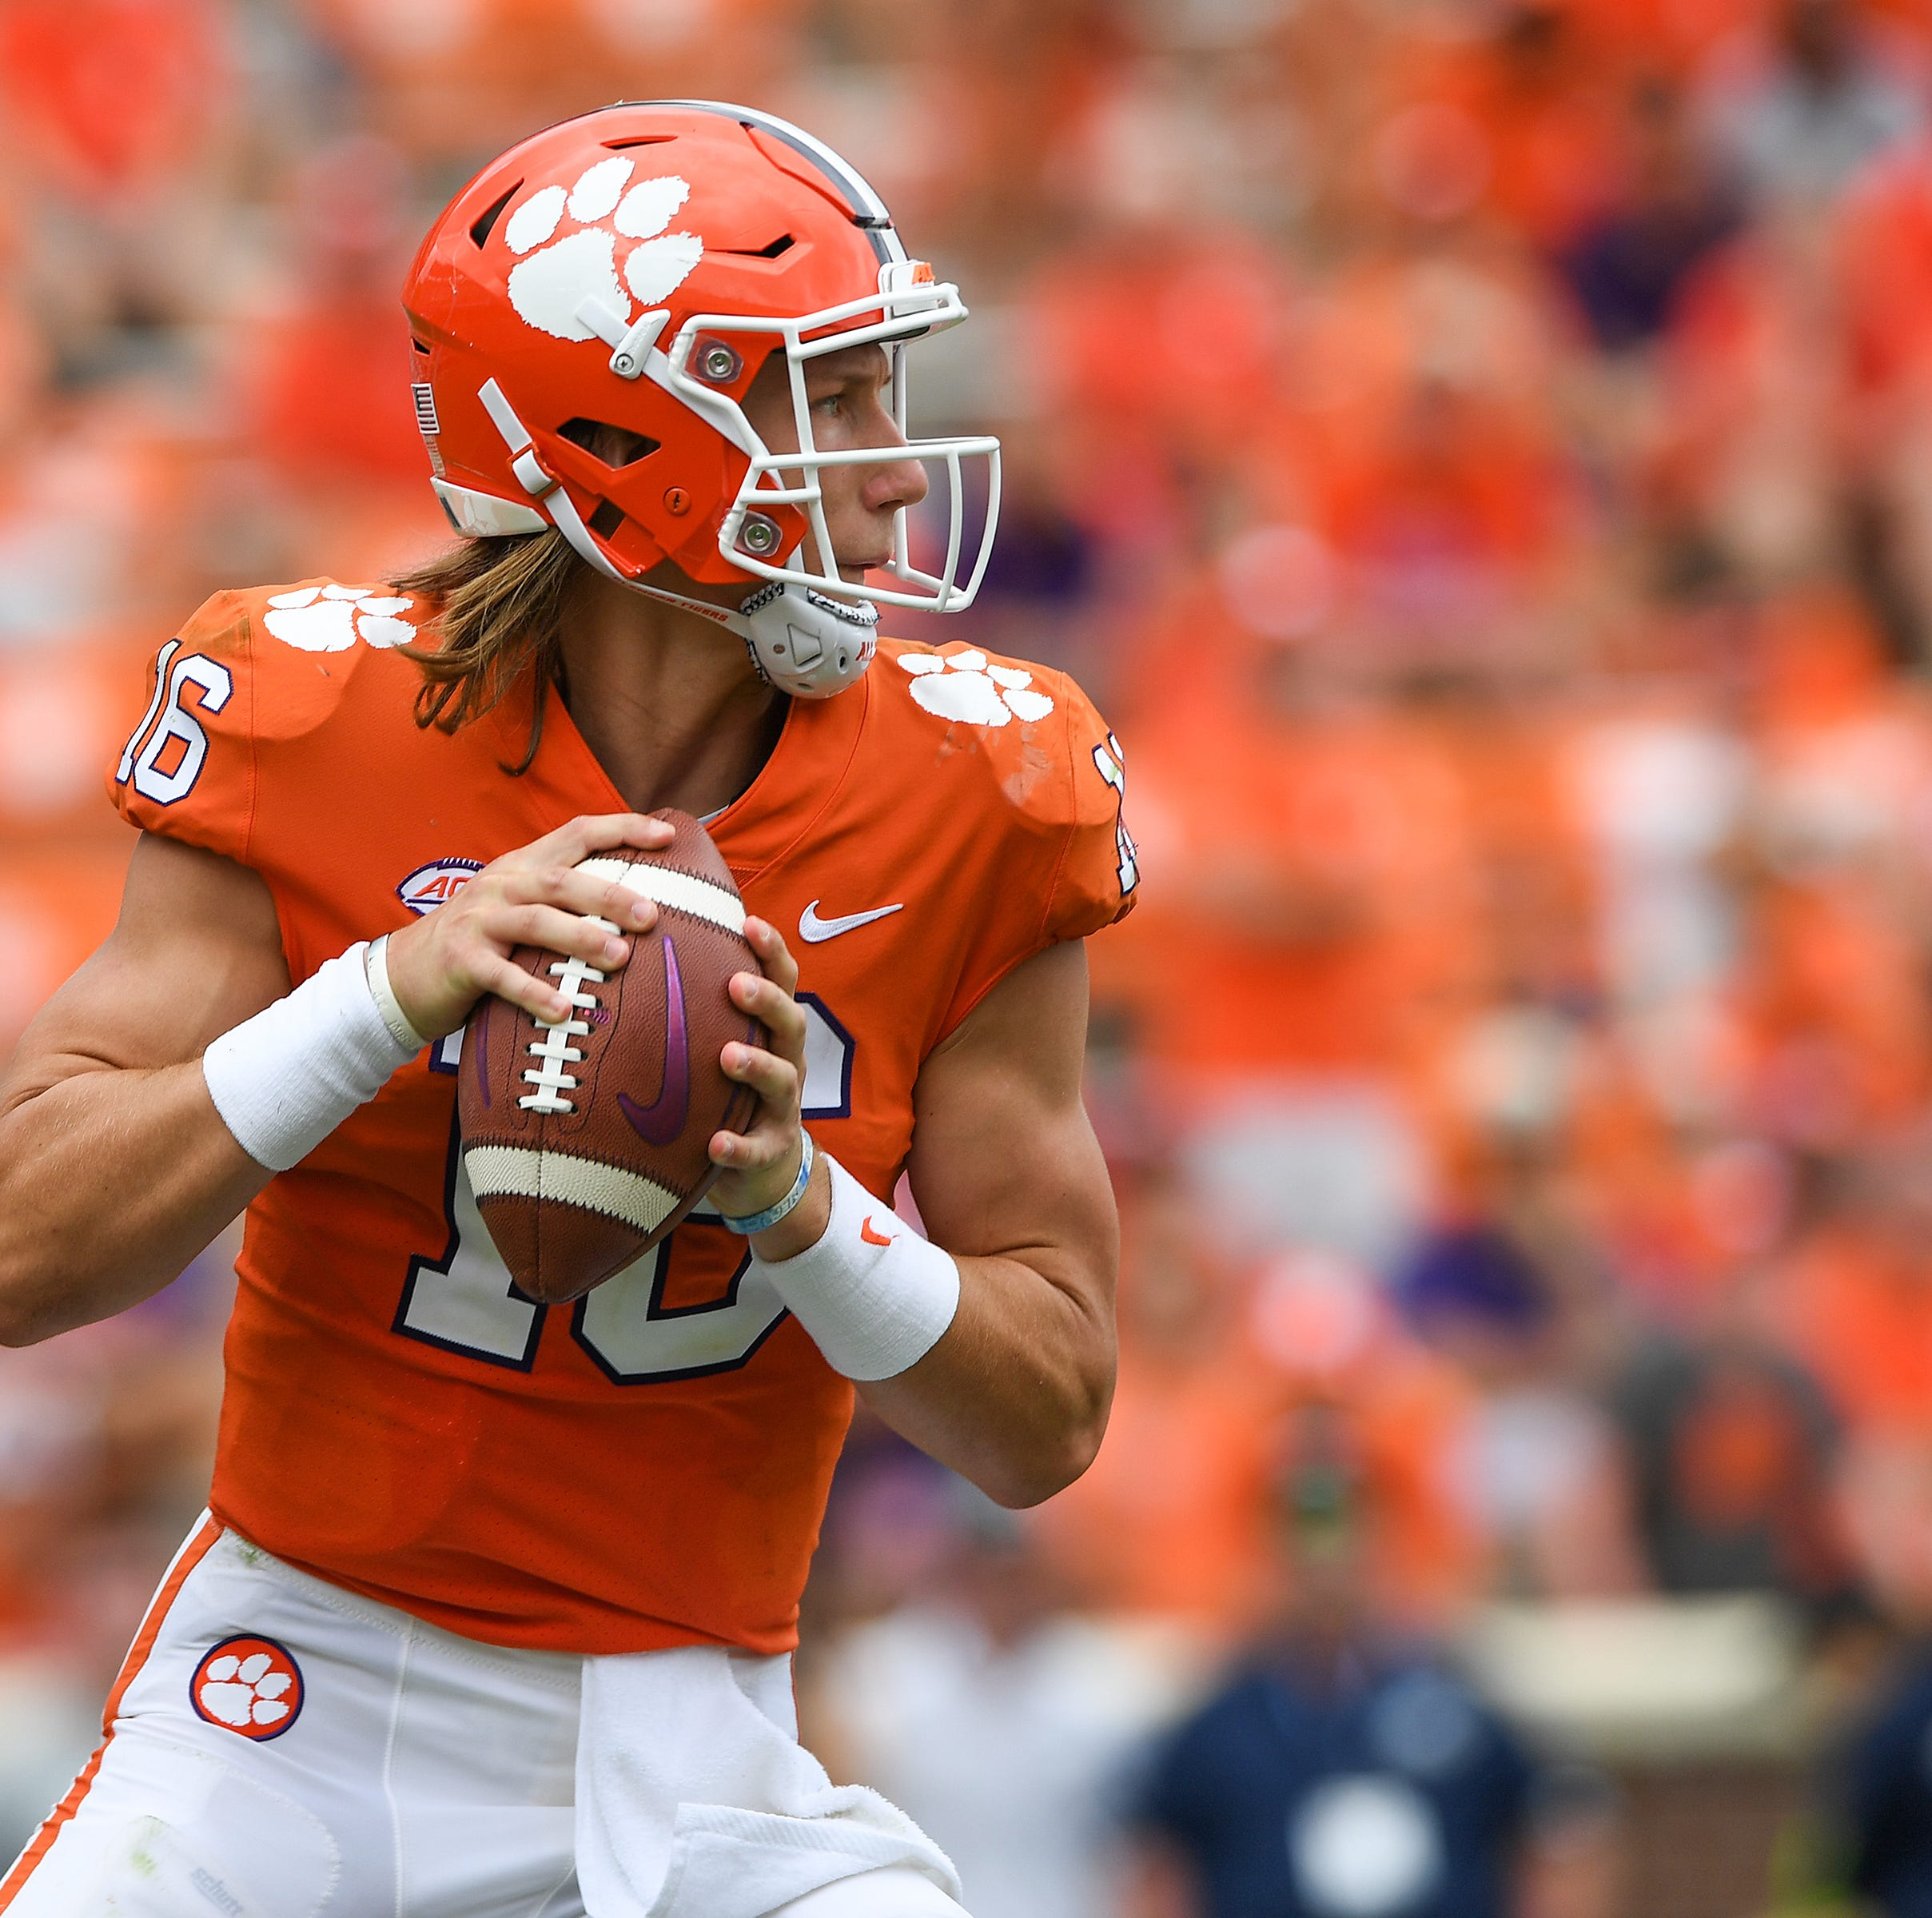 Clemson scouting report ahead of Cotton Bowl showdown vs. Notre Dame